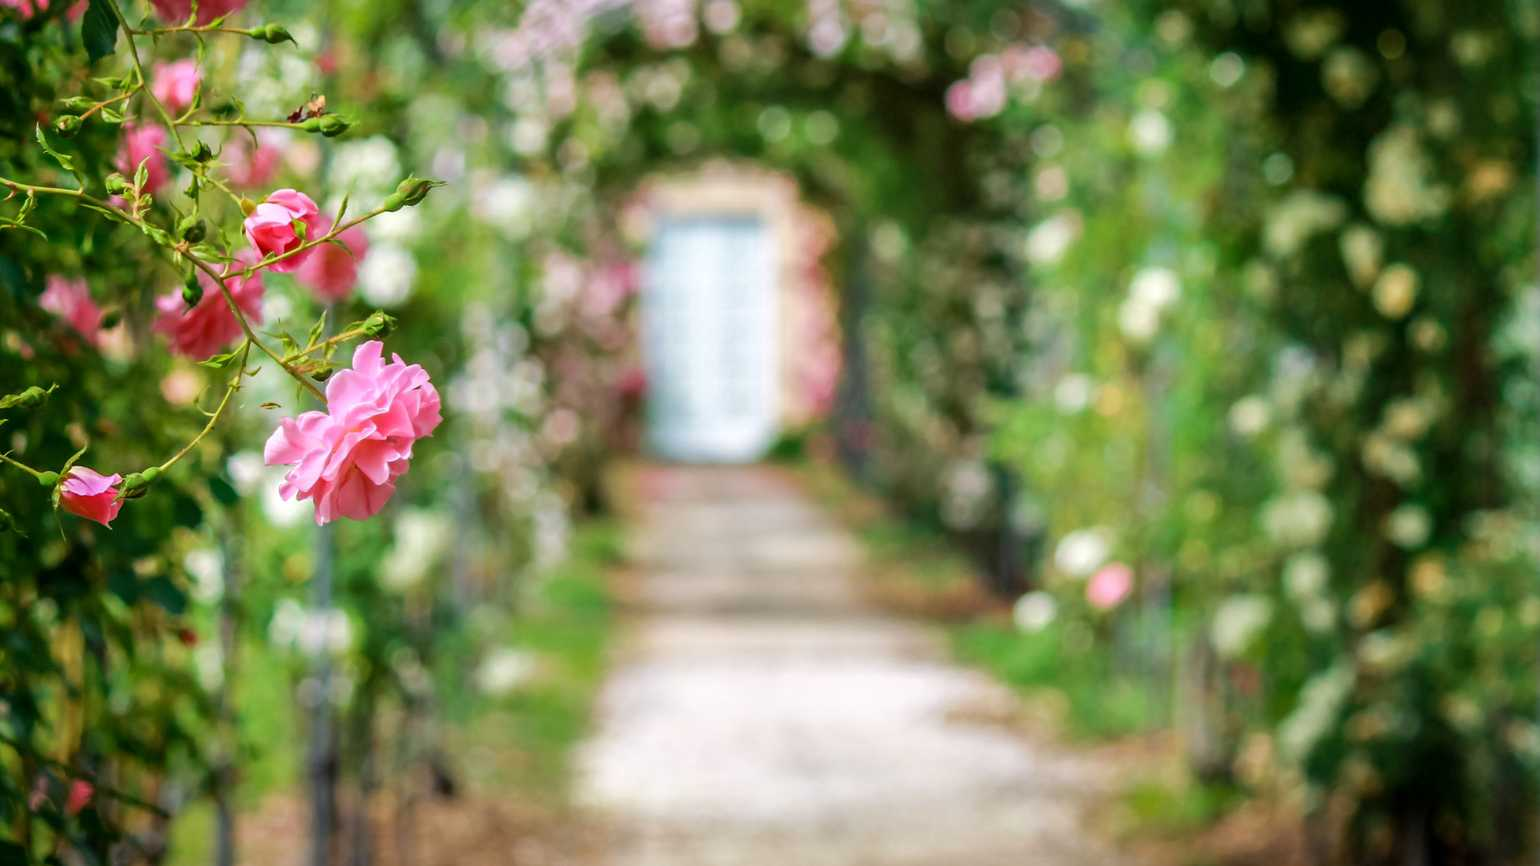 Beautiful roses on arches in the ornamental garden with footpath.